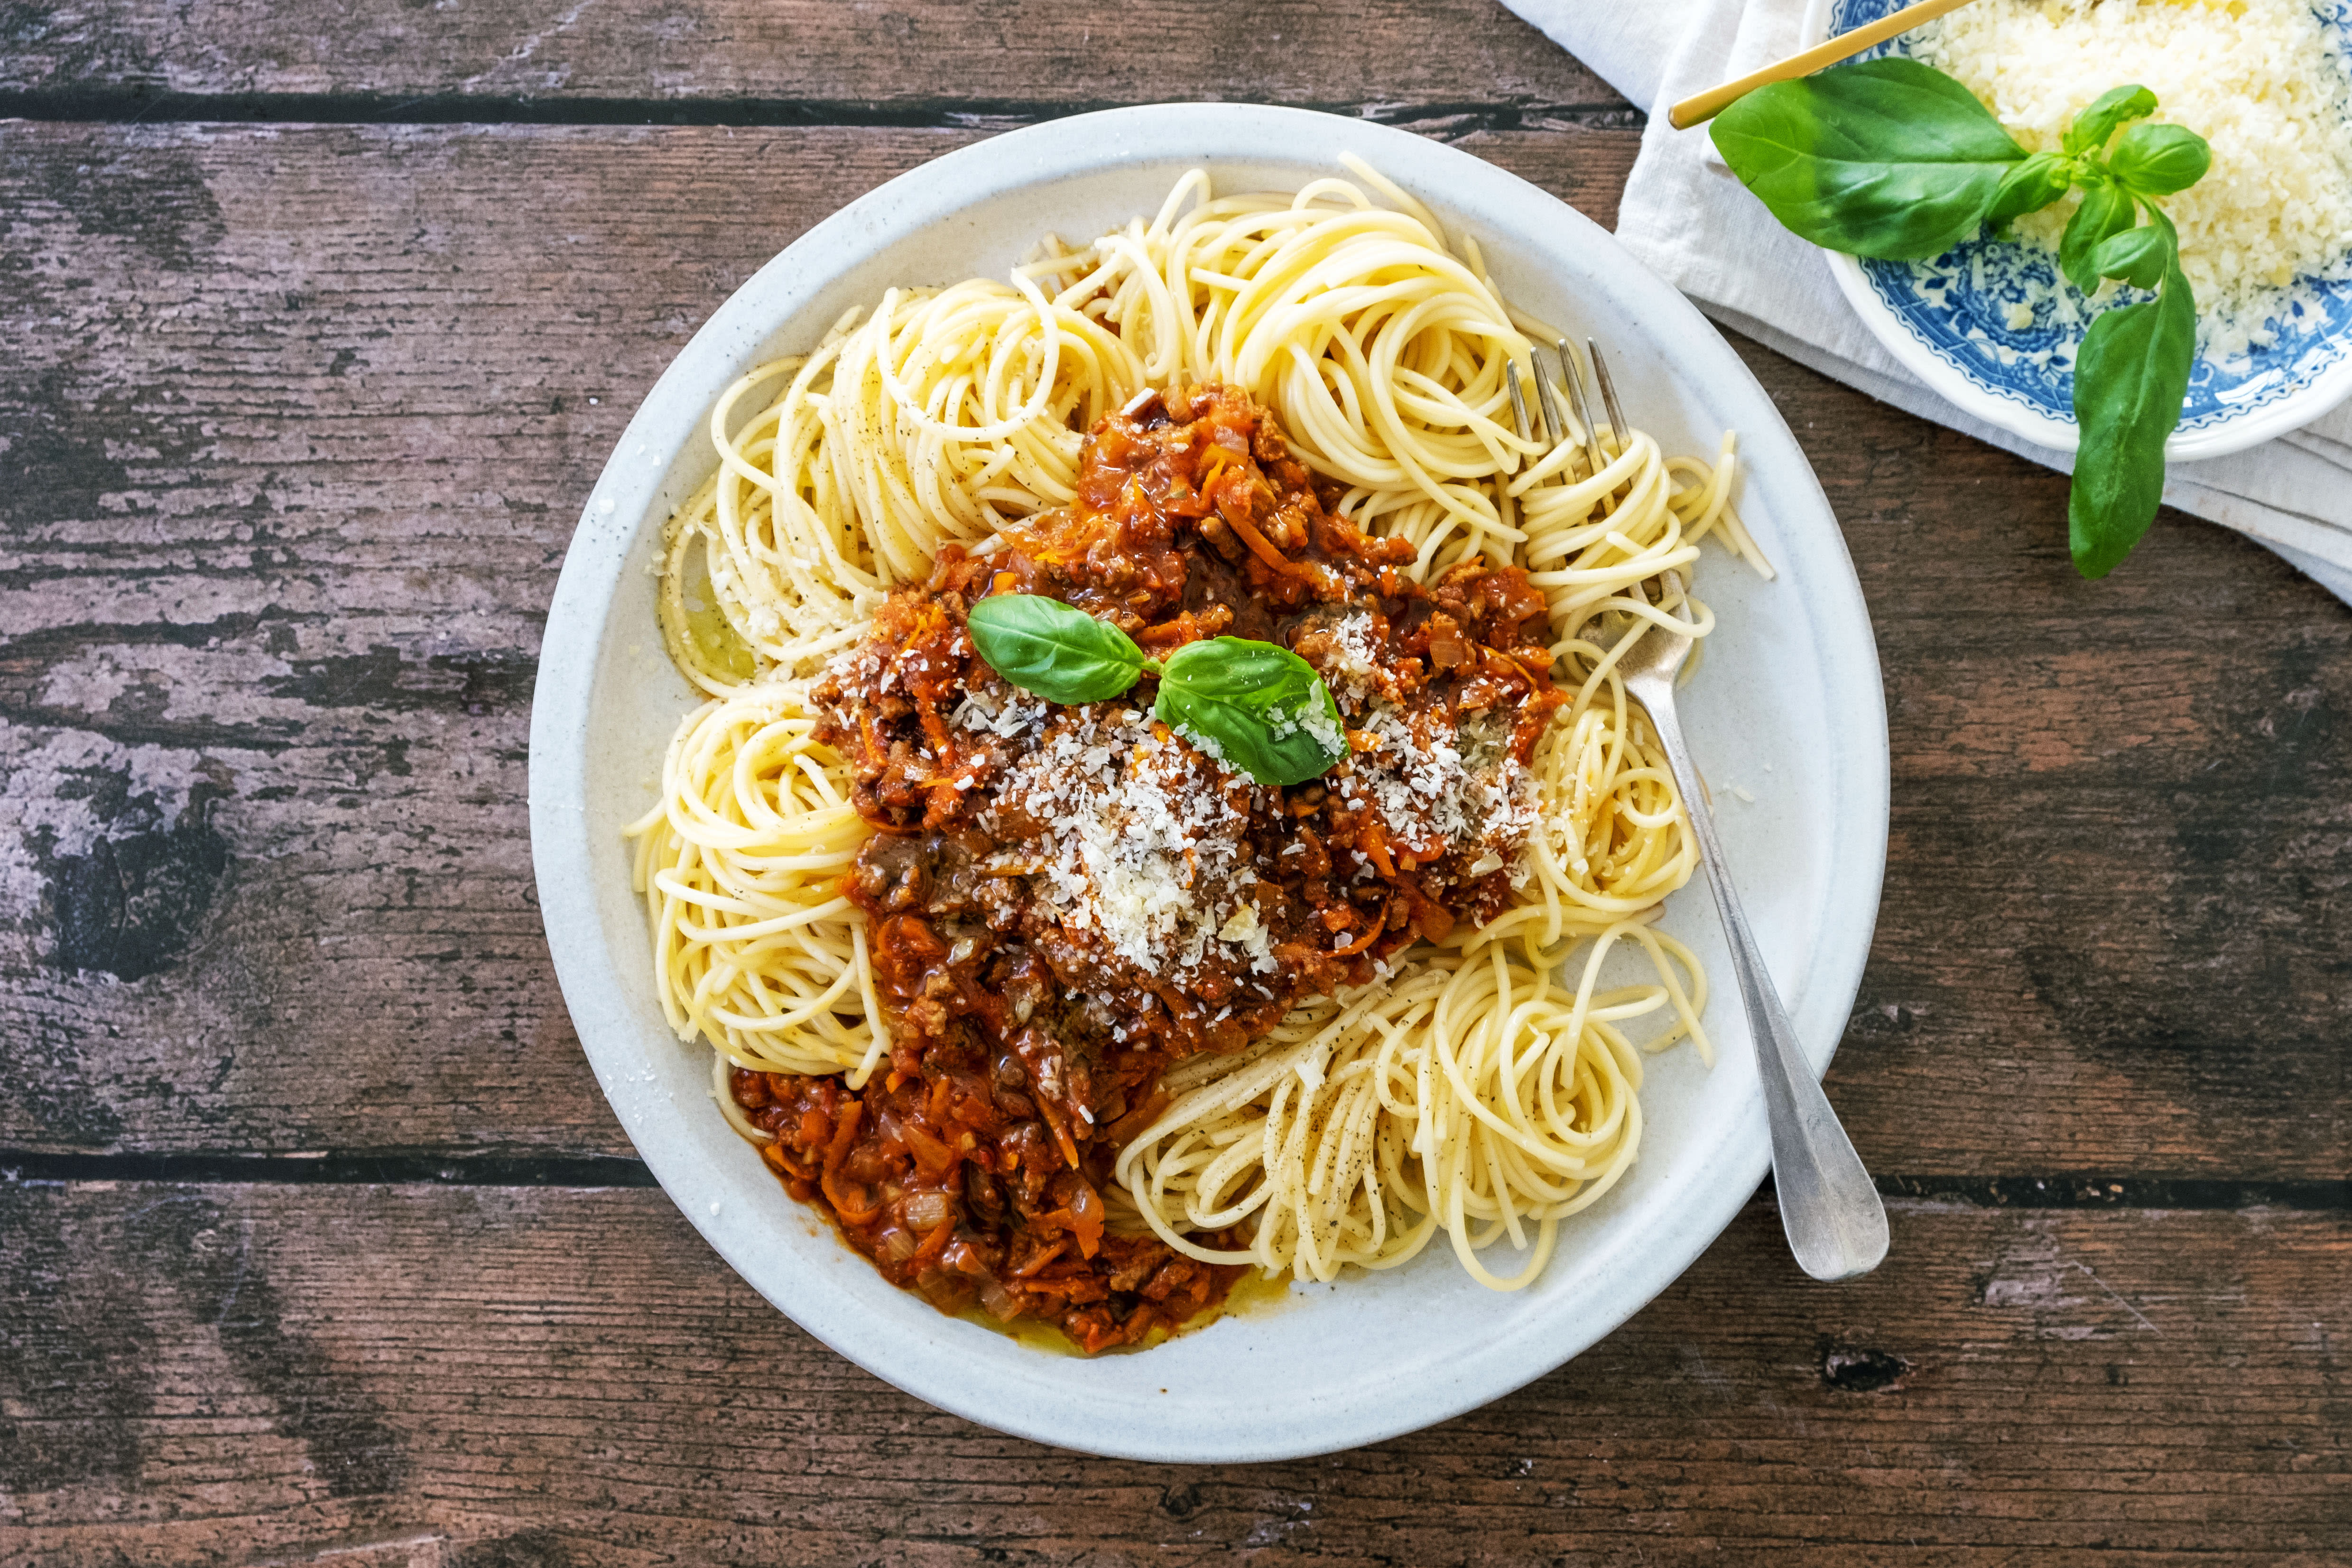 Classic Spaghetti Bolognese with Parmesan